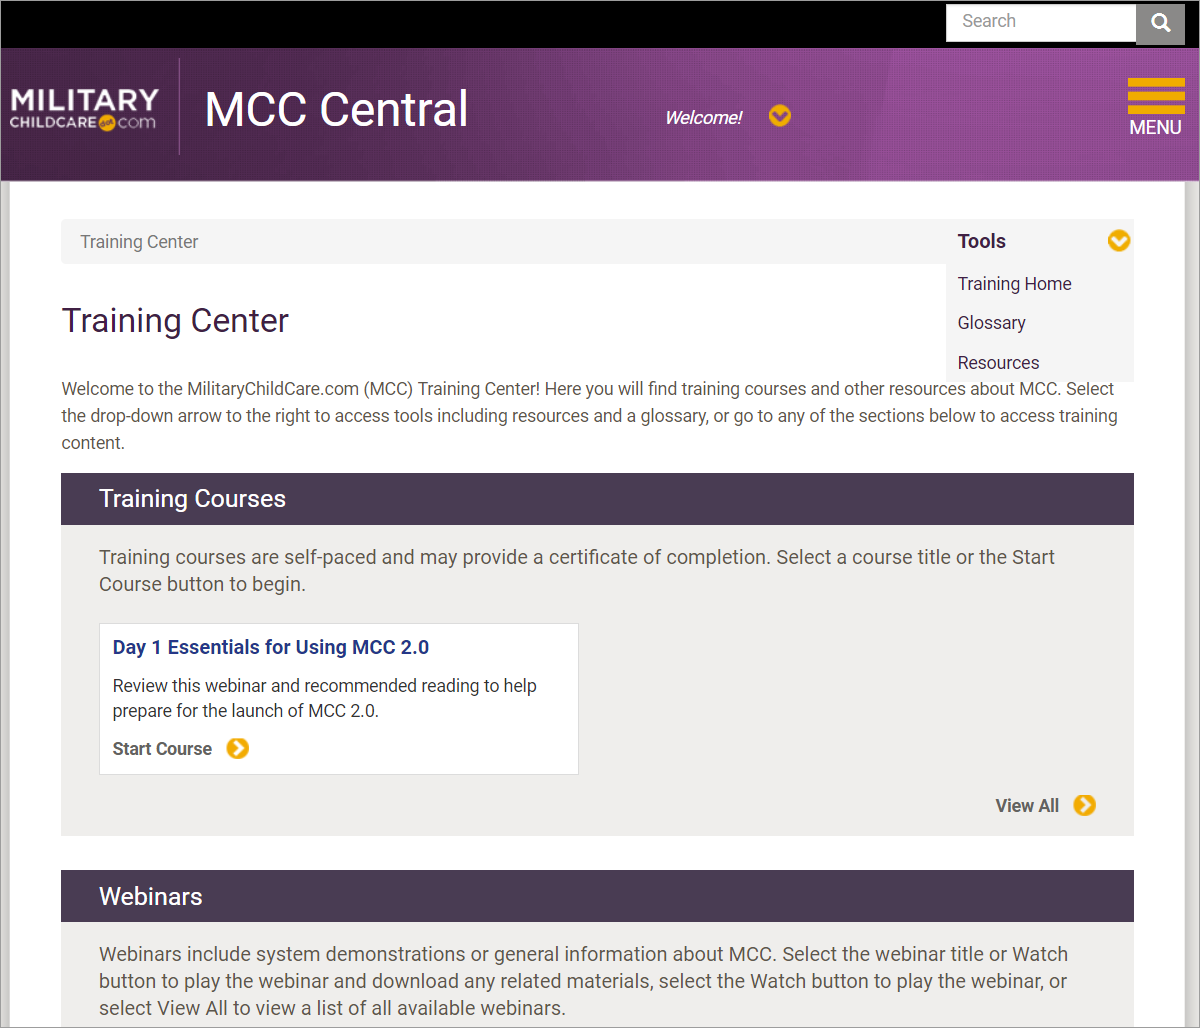 MCC Central Training Center